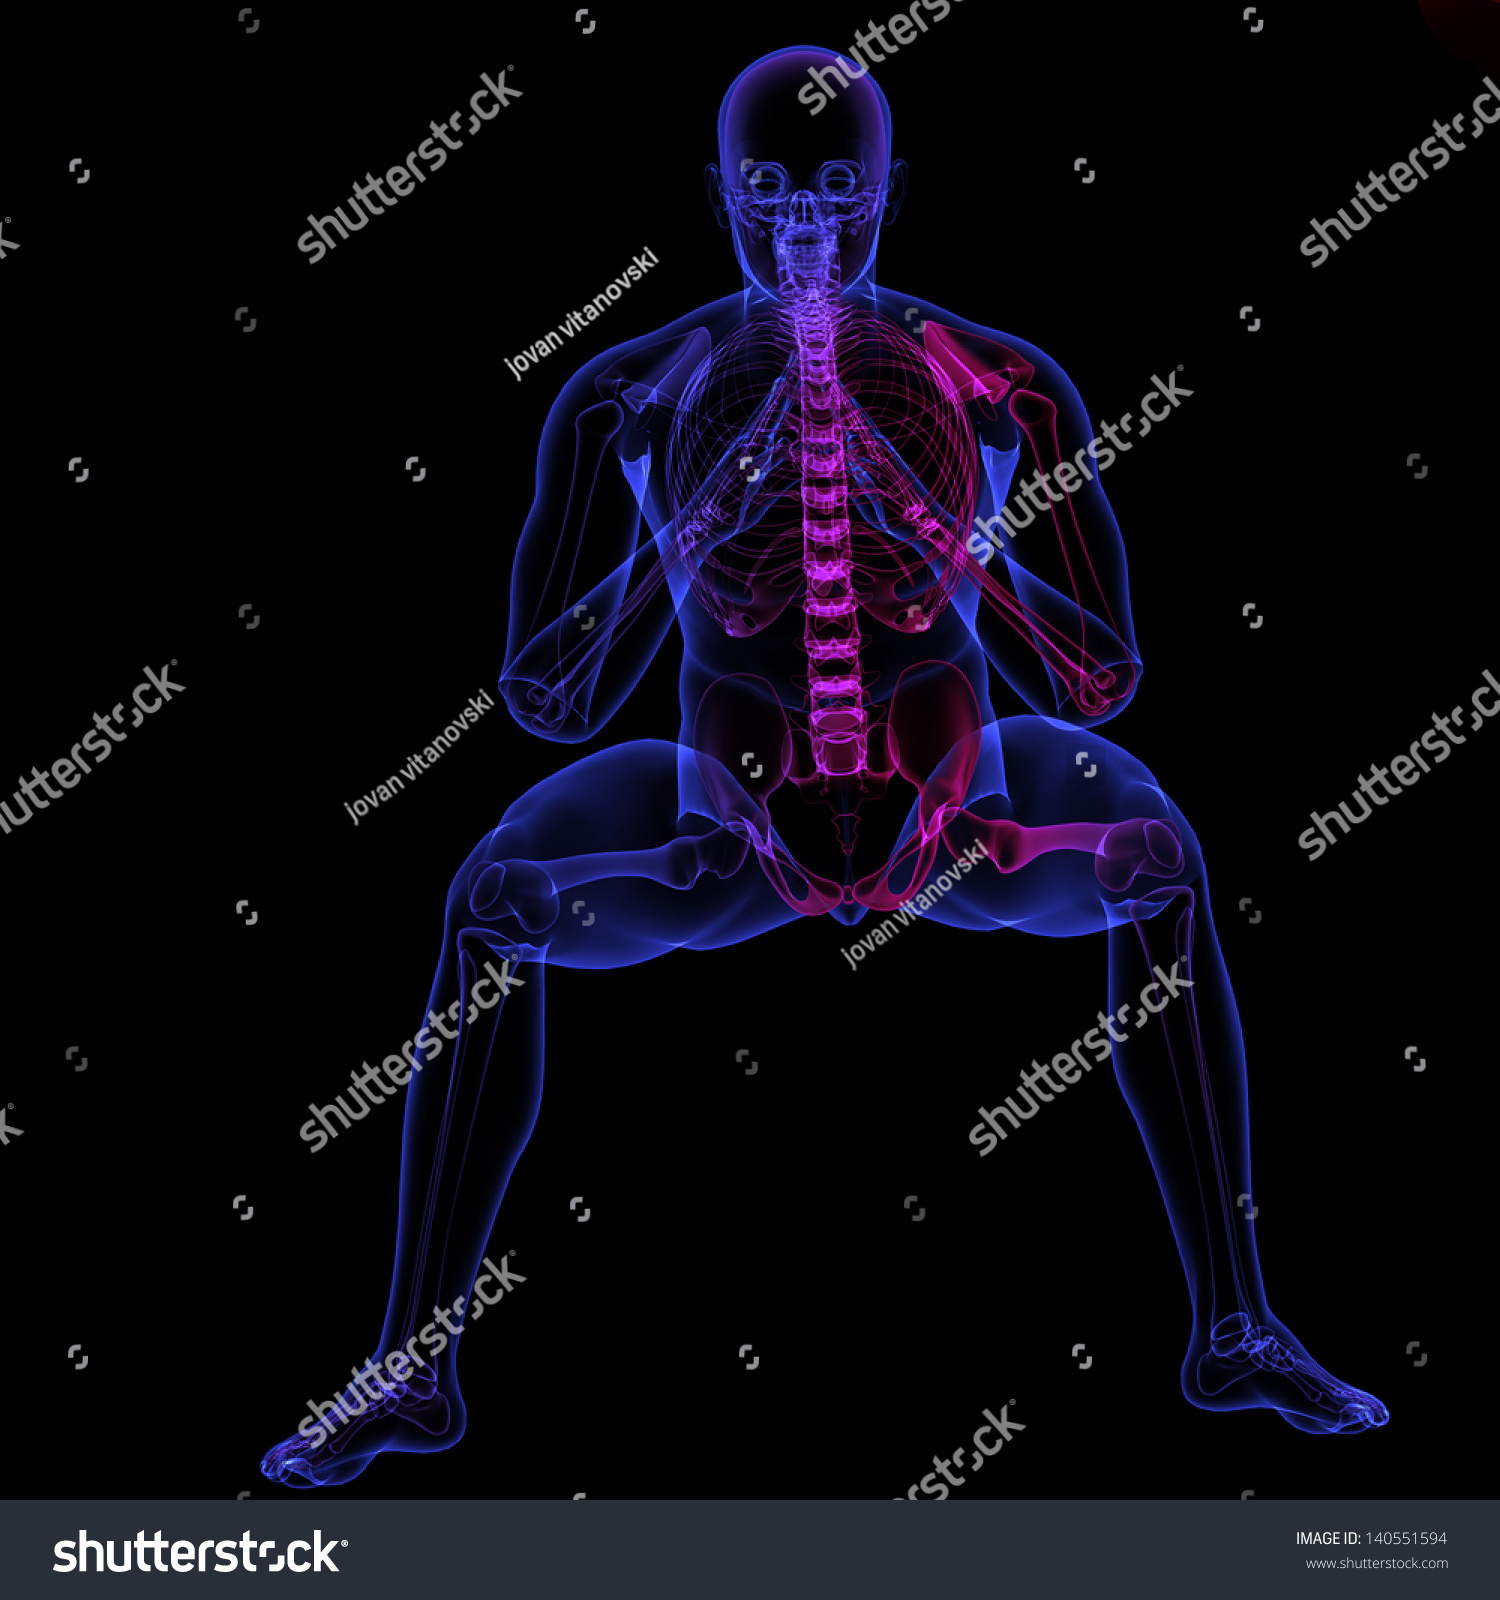 Royalty Free Stock Illustration Of Human Body Xray Made 3 D Software